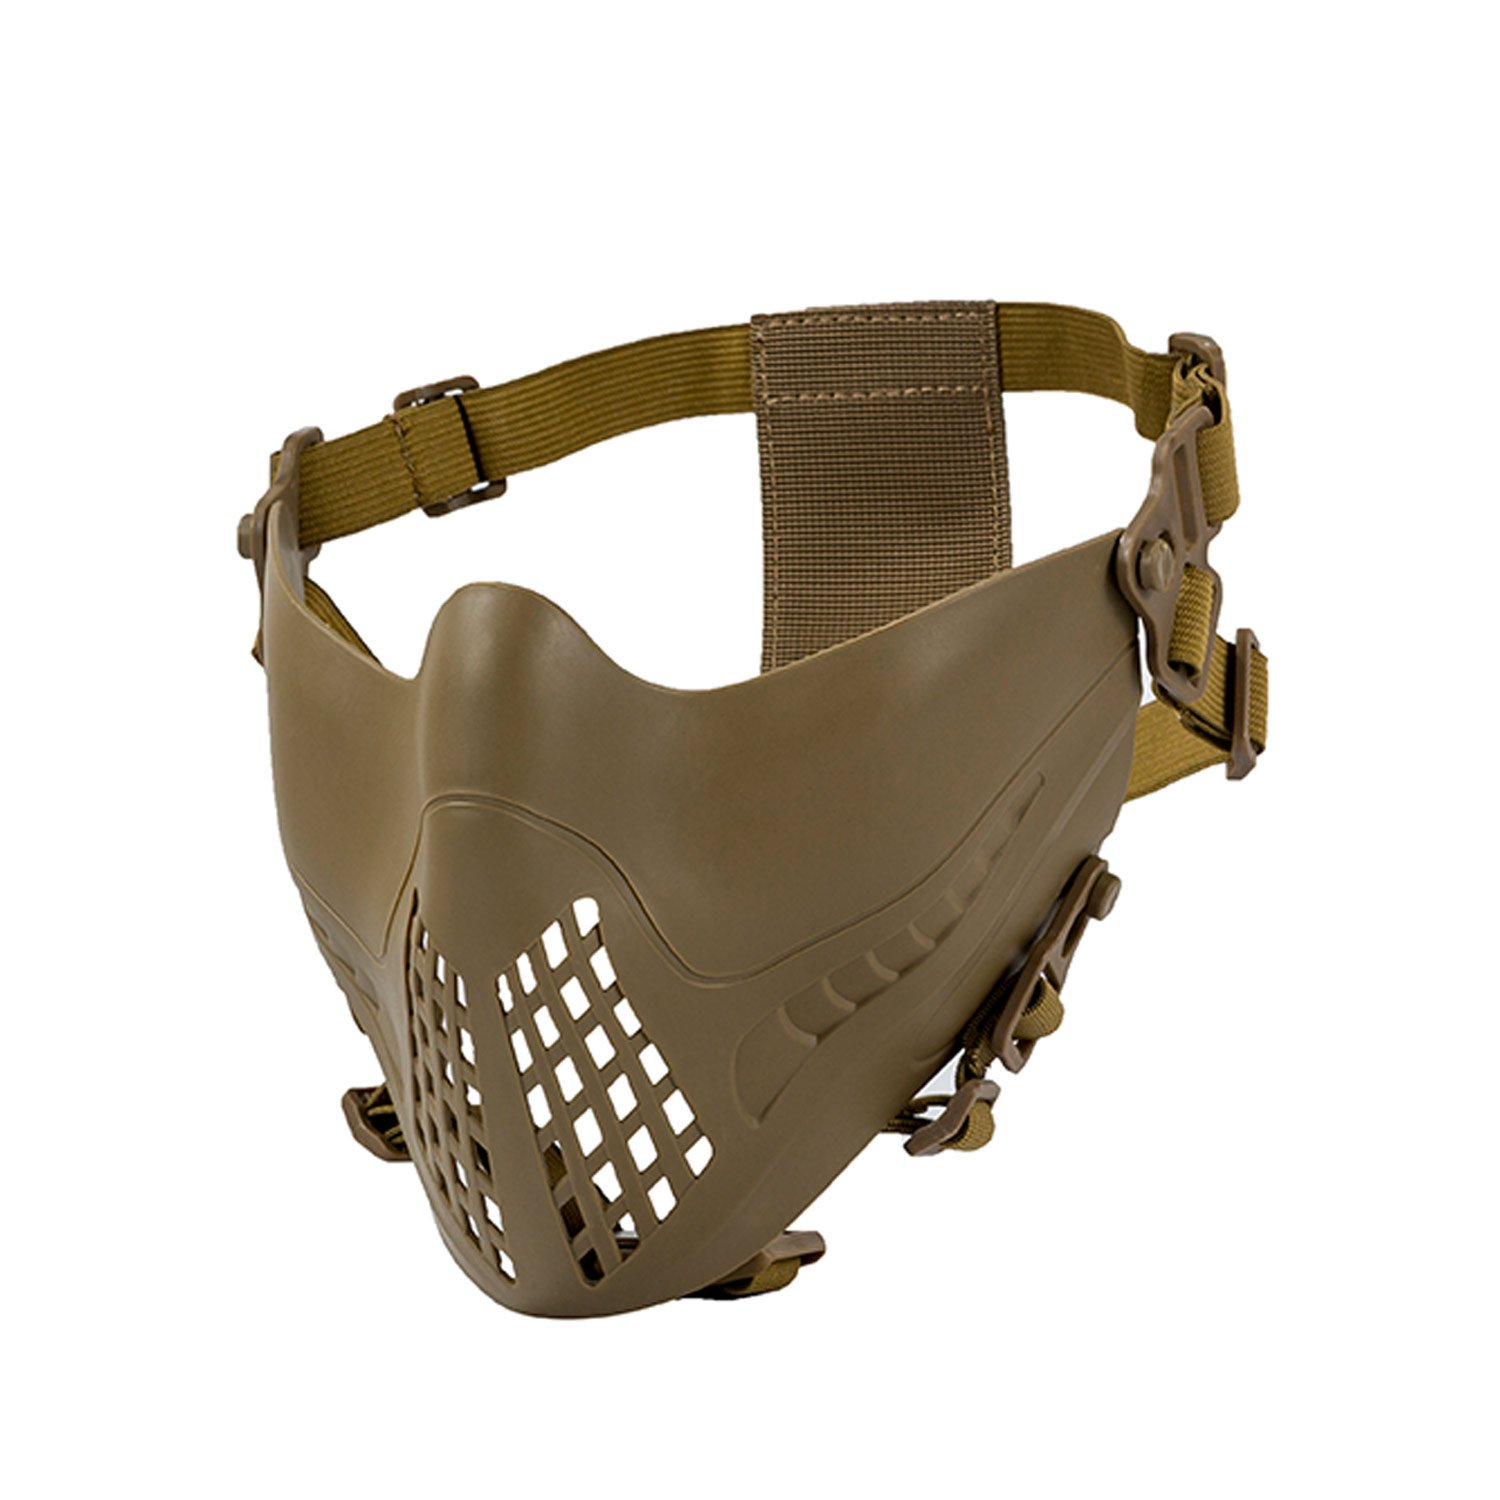 1T Intimidator half-face Mask per veloce casco Airsoft Paintball Wargame Cosplay, Uomo, Tan 1T Gear